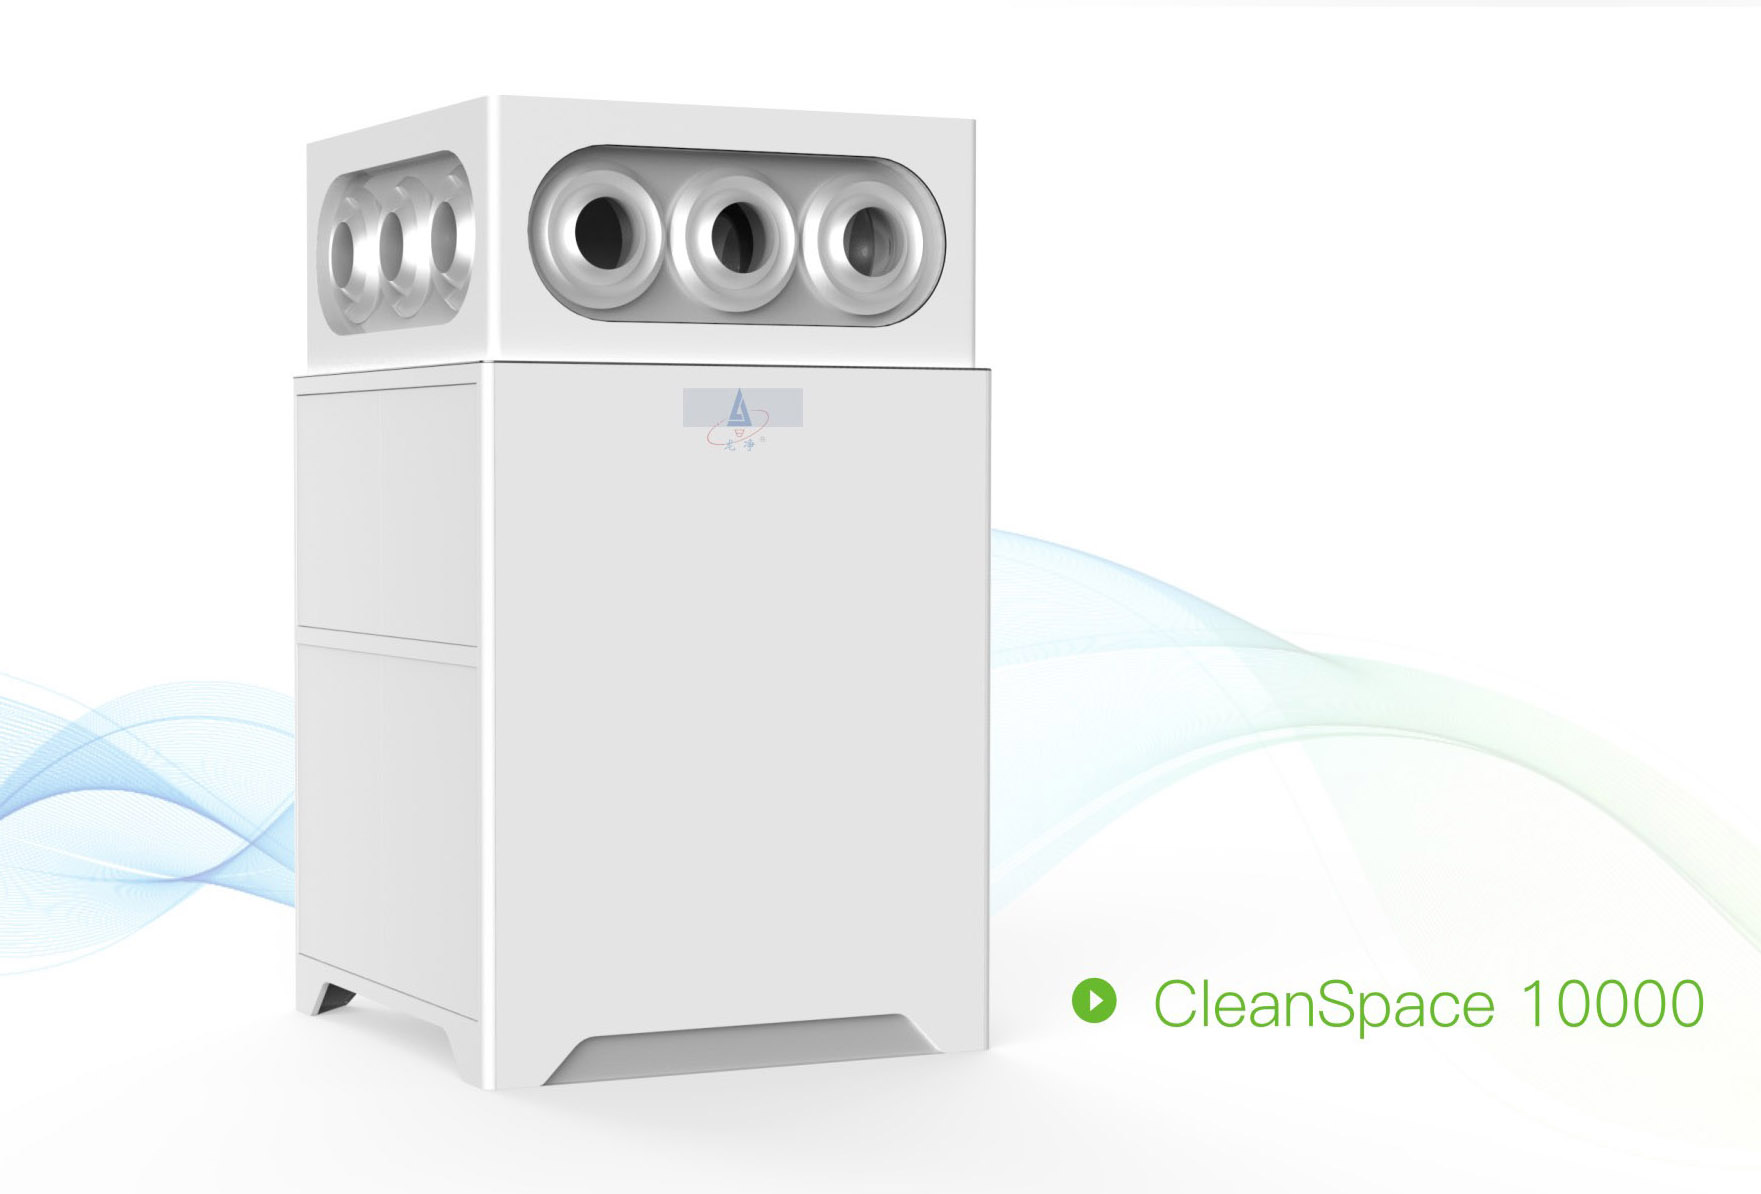 CleanSpace 雾霾净化系列